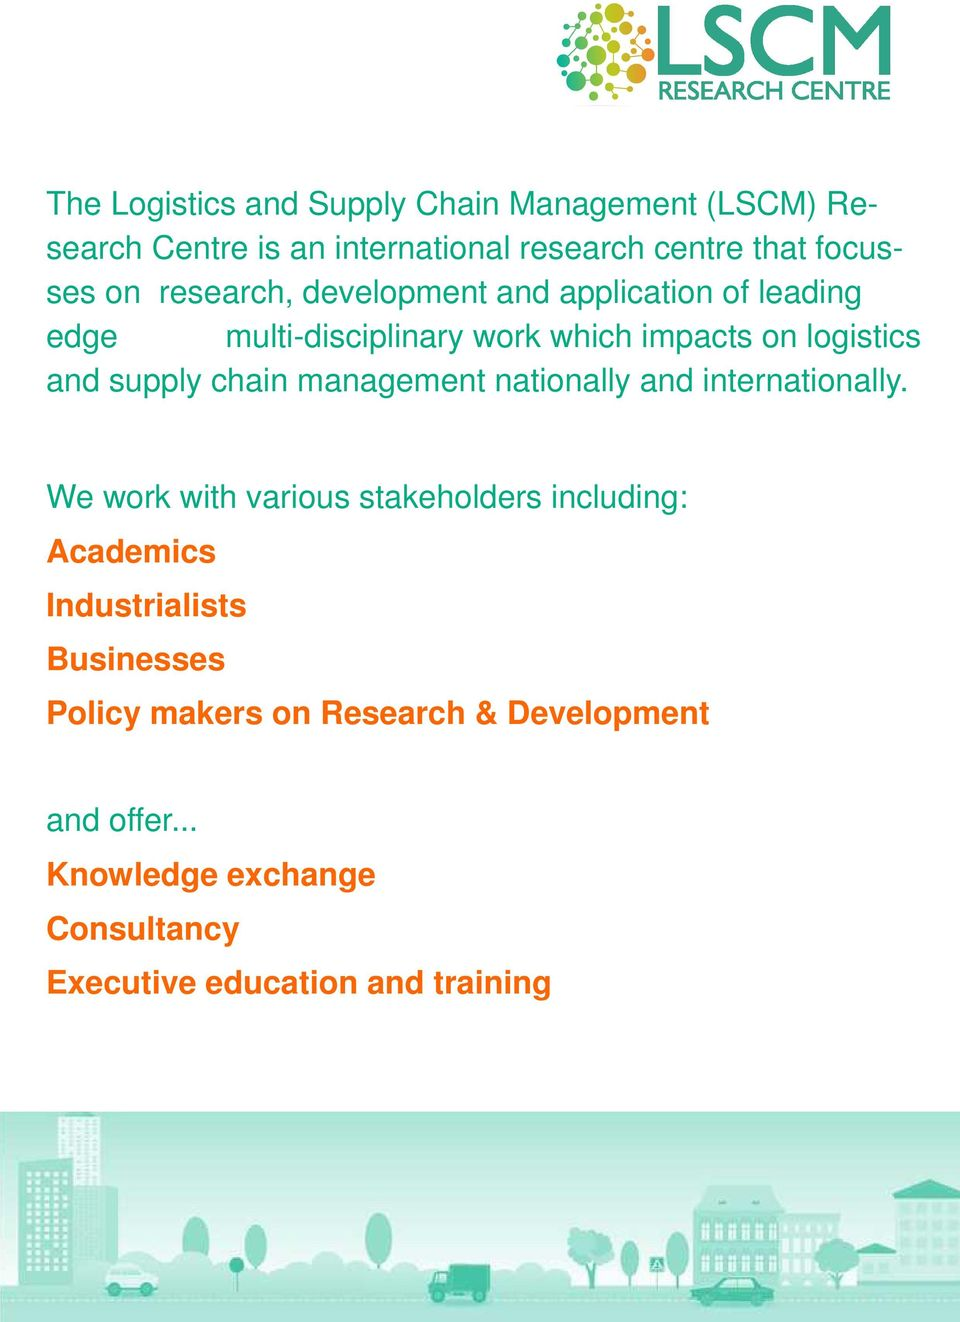 chain management nationally and internationally.